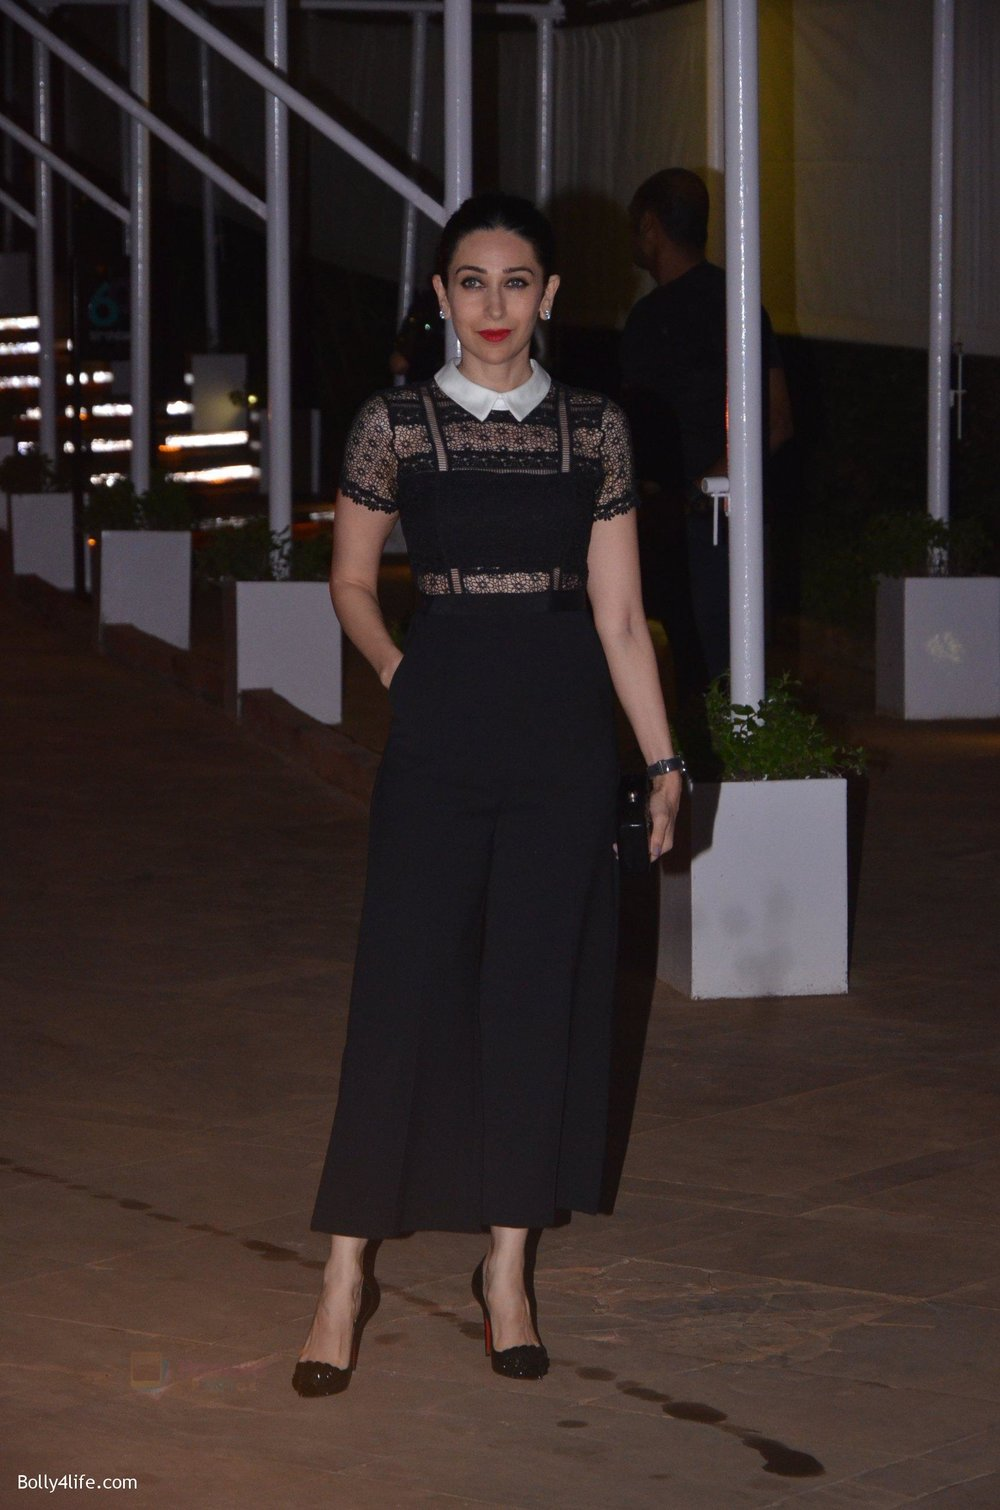 Karisma-Kapoor-at-Reema-jain-bday-party-in-Amadeus-NCPA-on-28th-Sept-2016-744.jpg